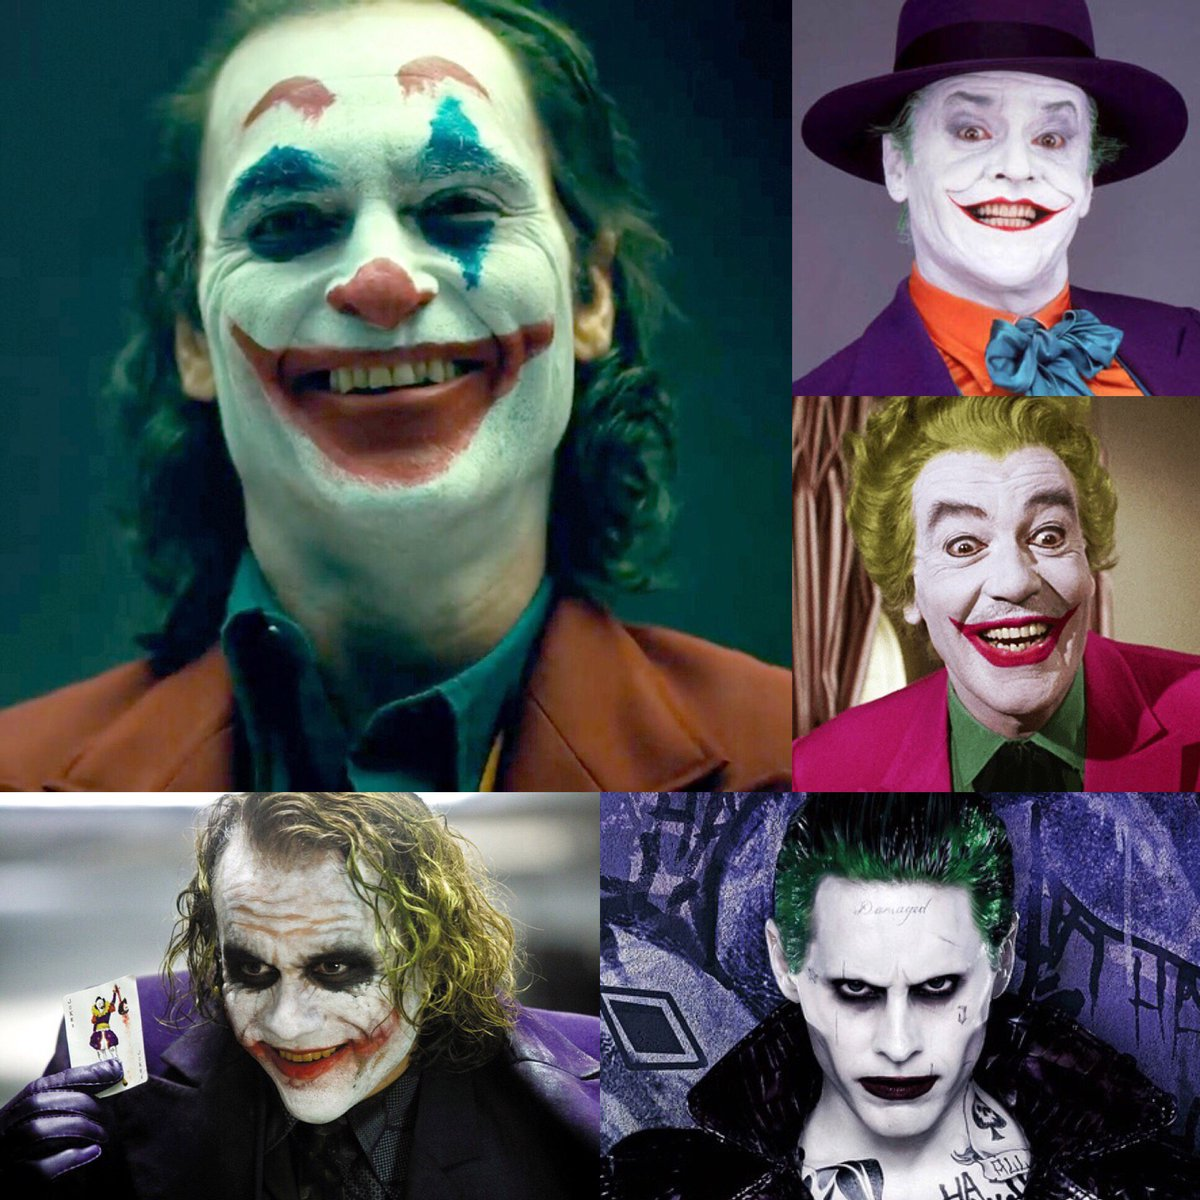 Joaquin Phoenix is the 5th face of the #Joker